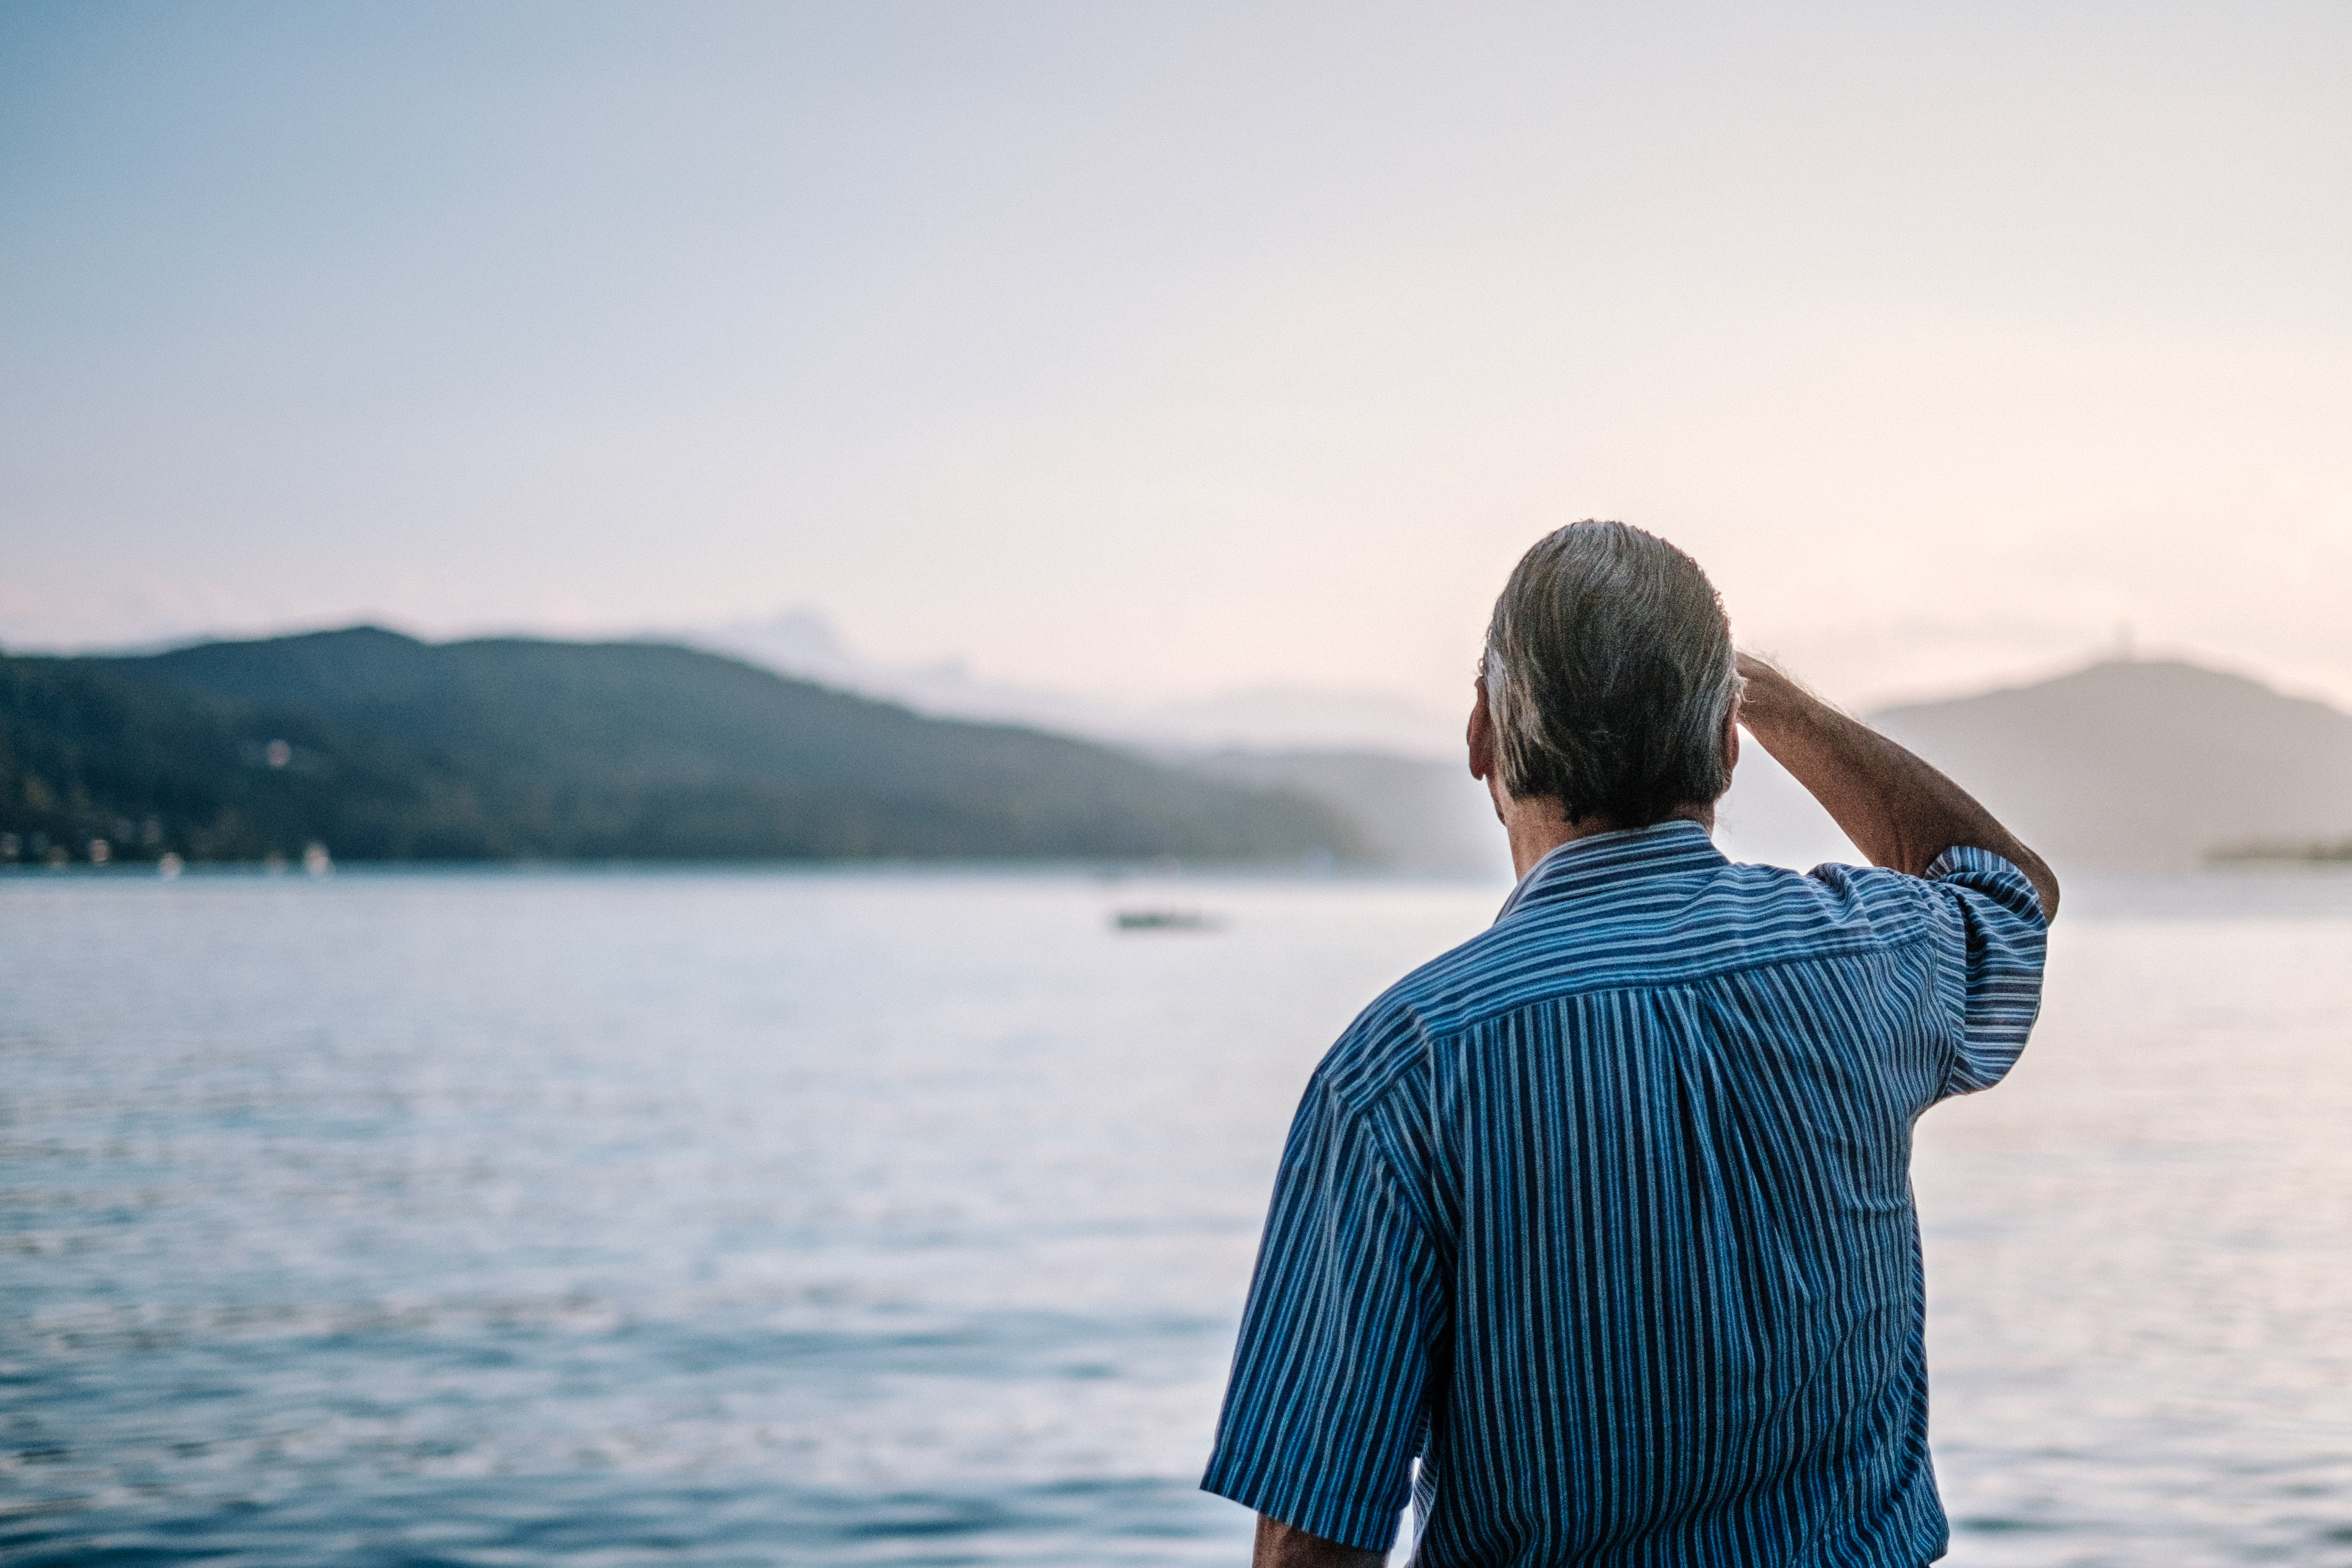 Man stares out at ocean